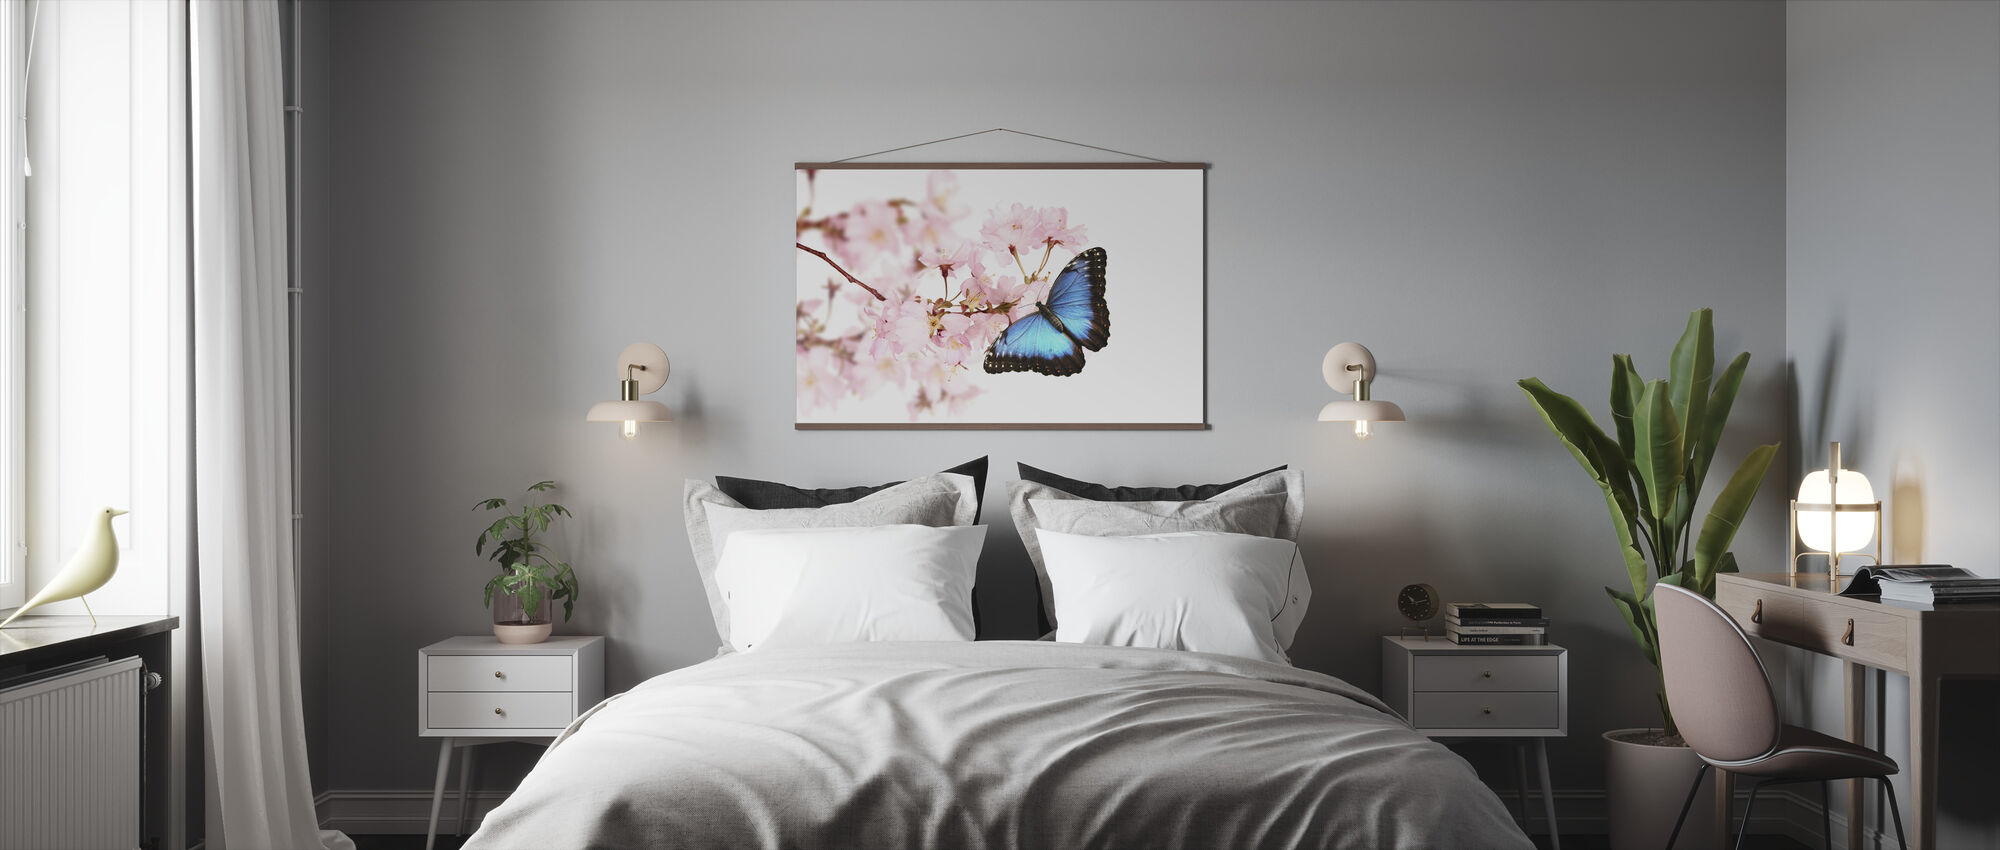 Butterfly Cherry Blossoms - Poster - Bedroom